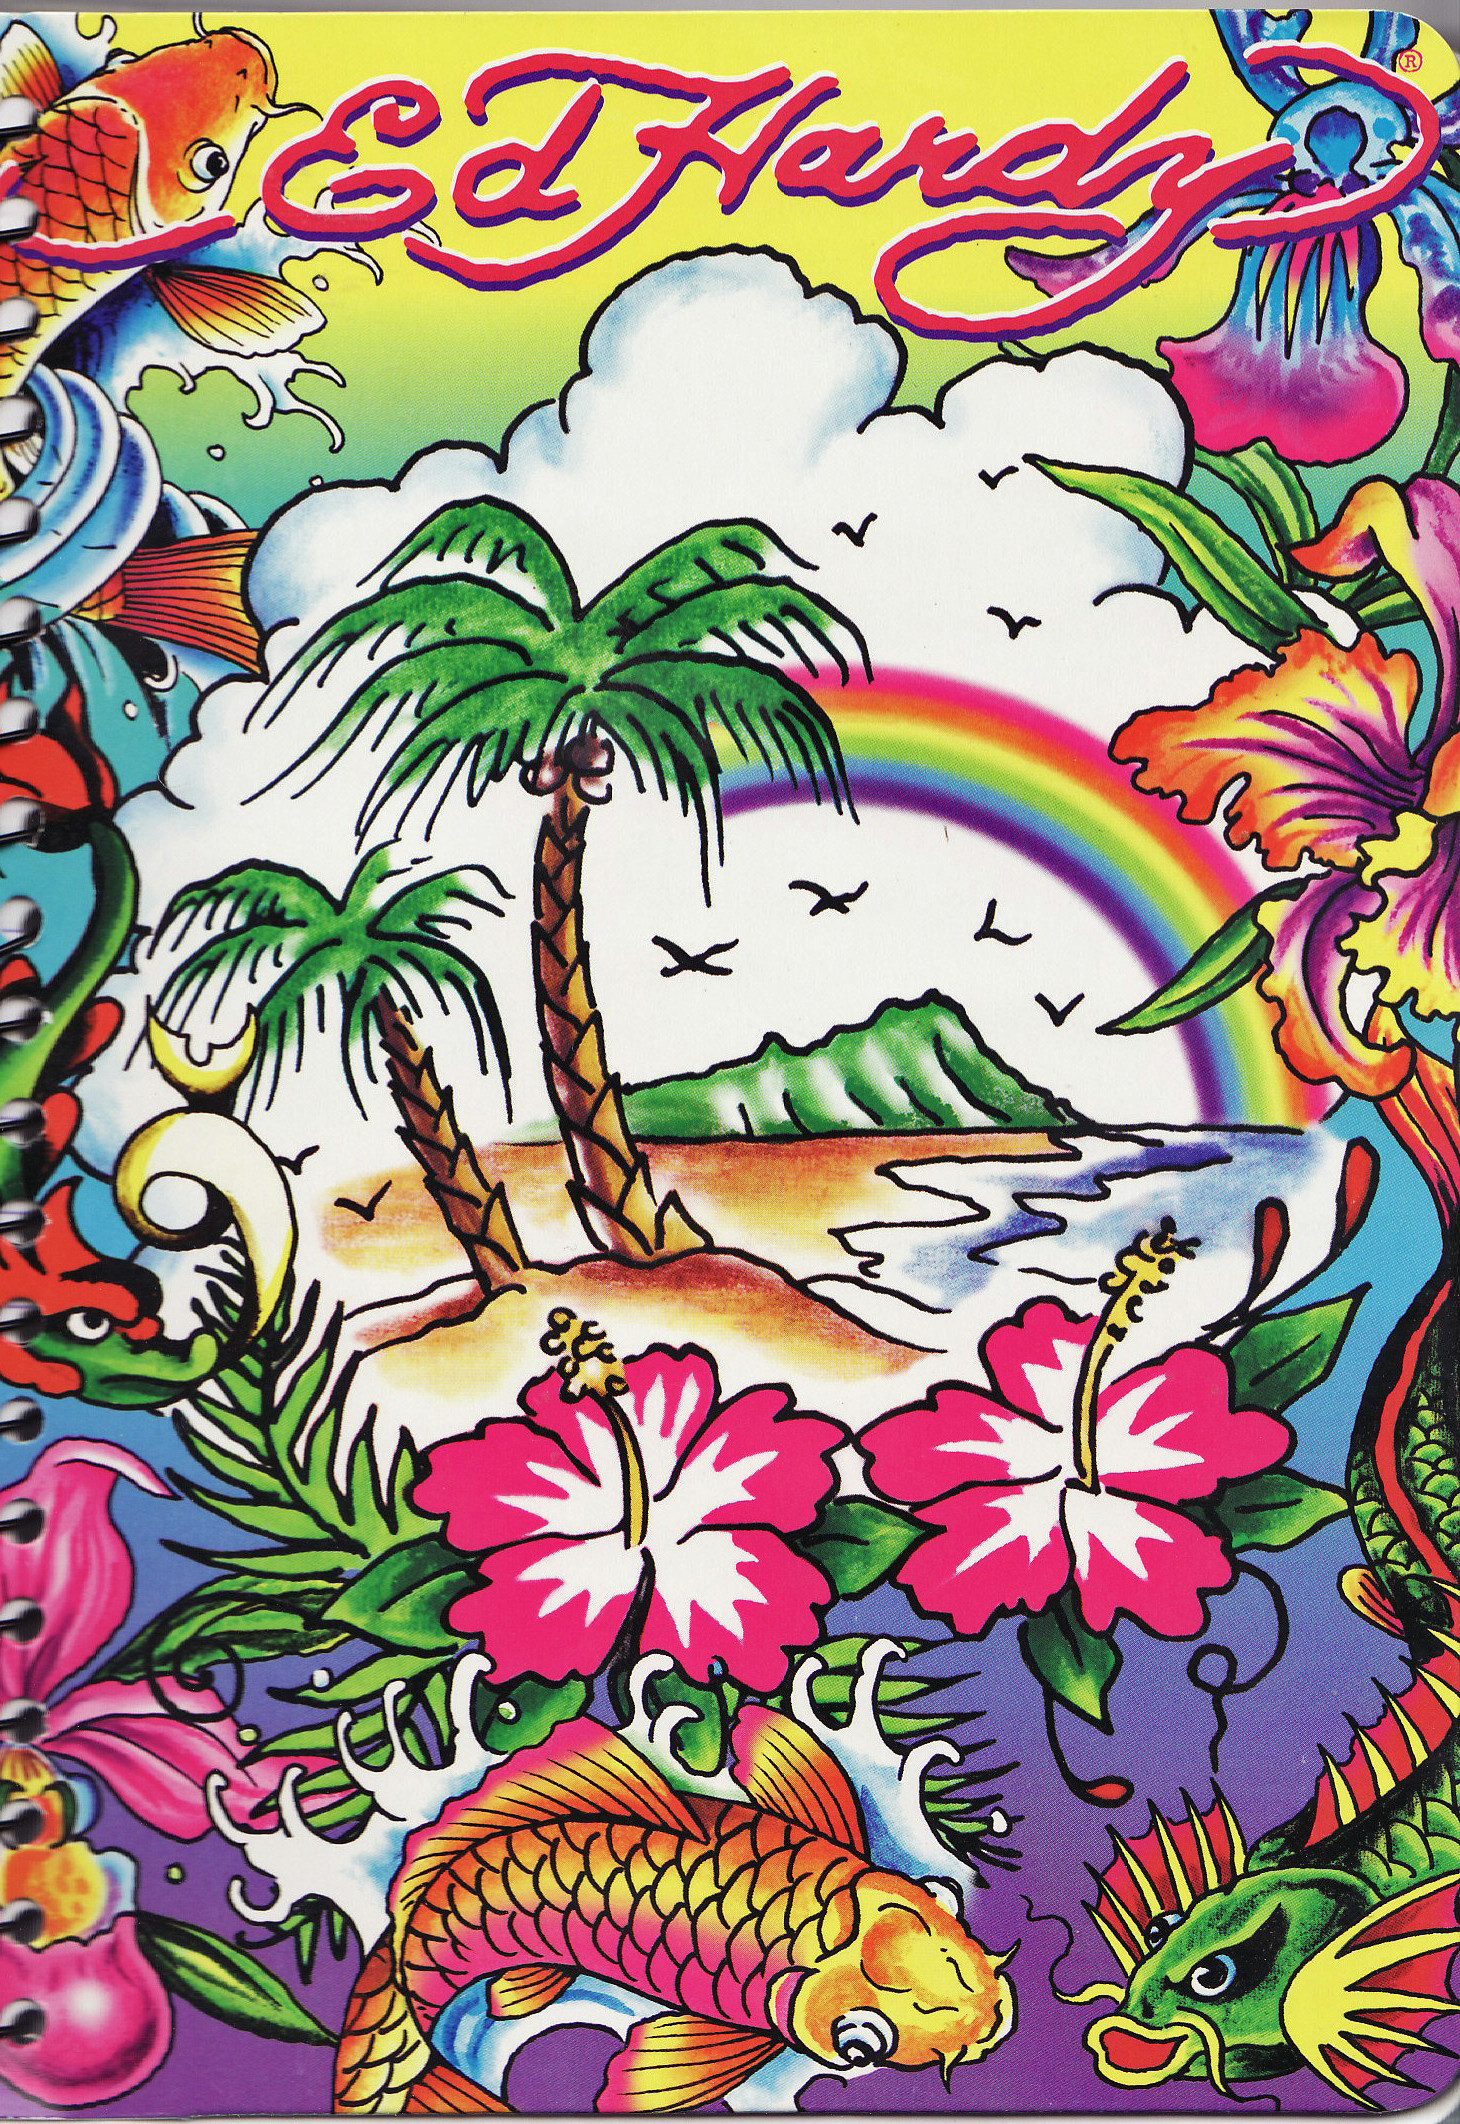 Ed hardy backgrounds 55 images - Ed hardy lisa frank ...